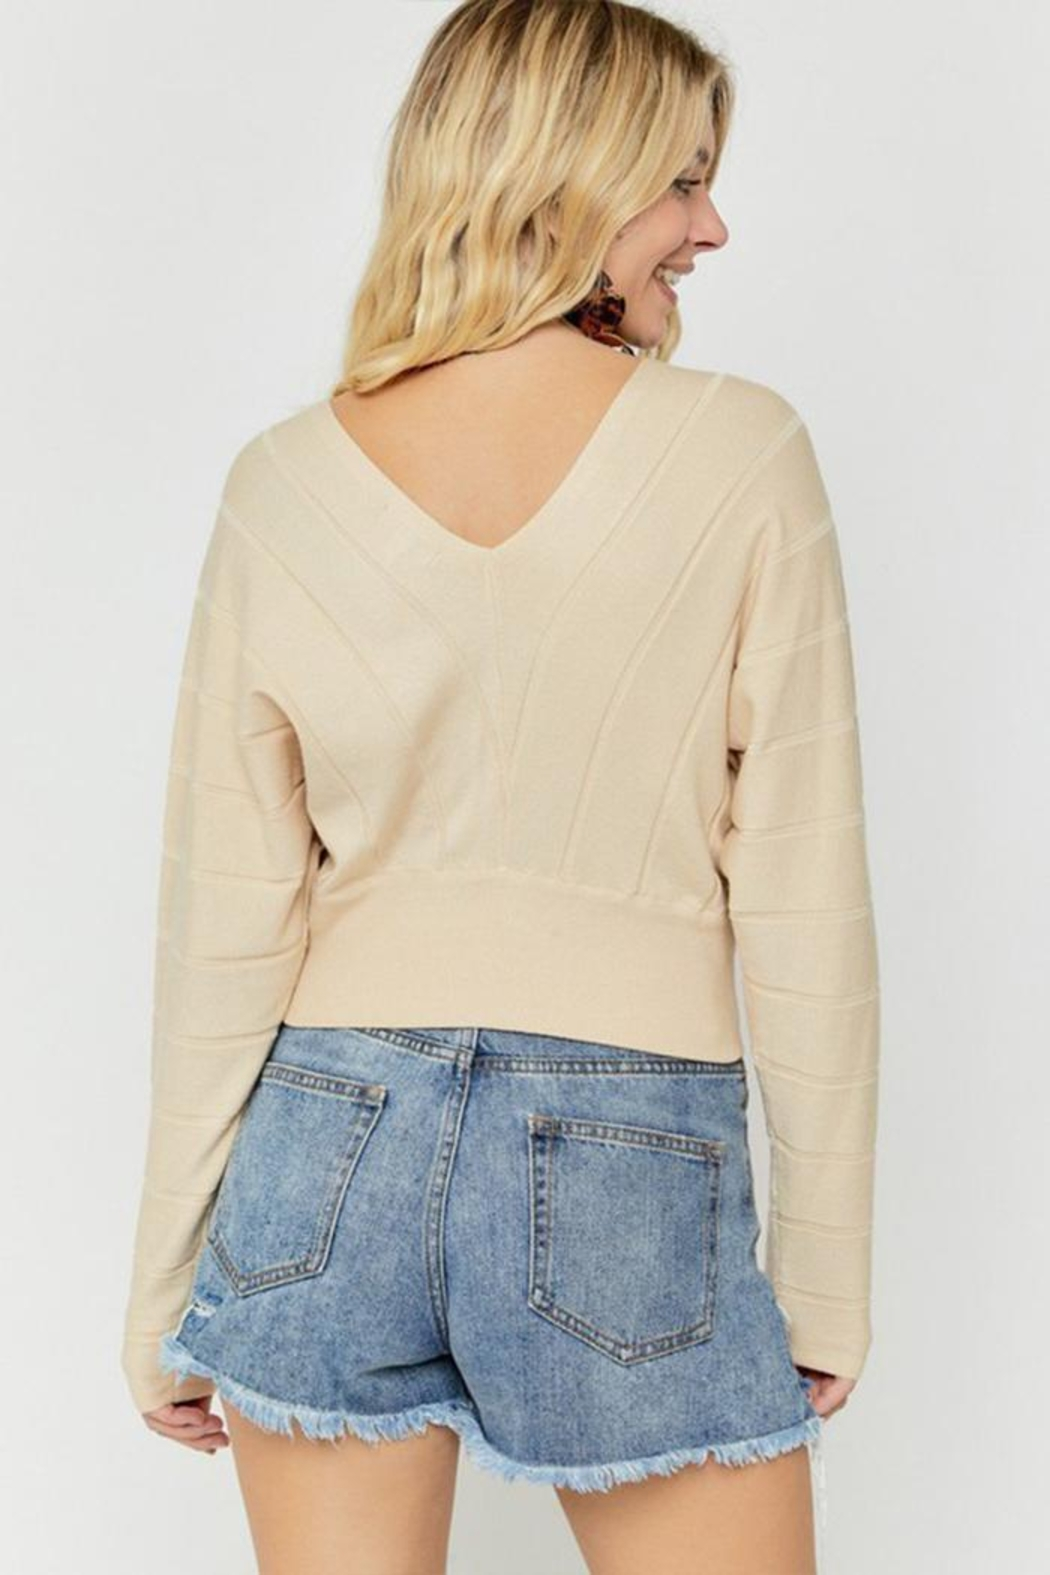 hers and mine Overlap Cropped Sweater - Back Cropped Image